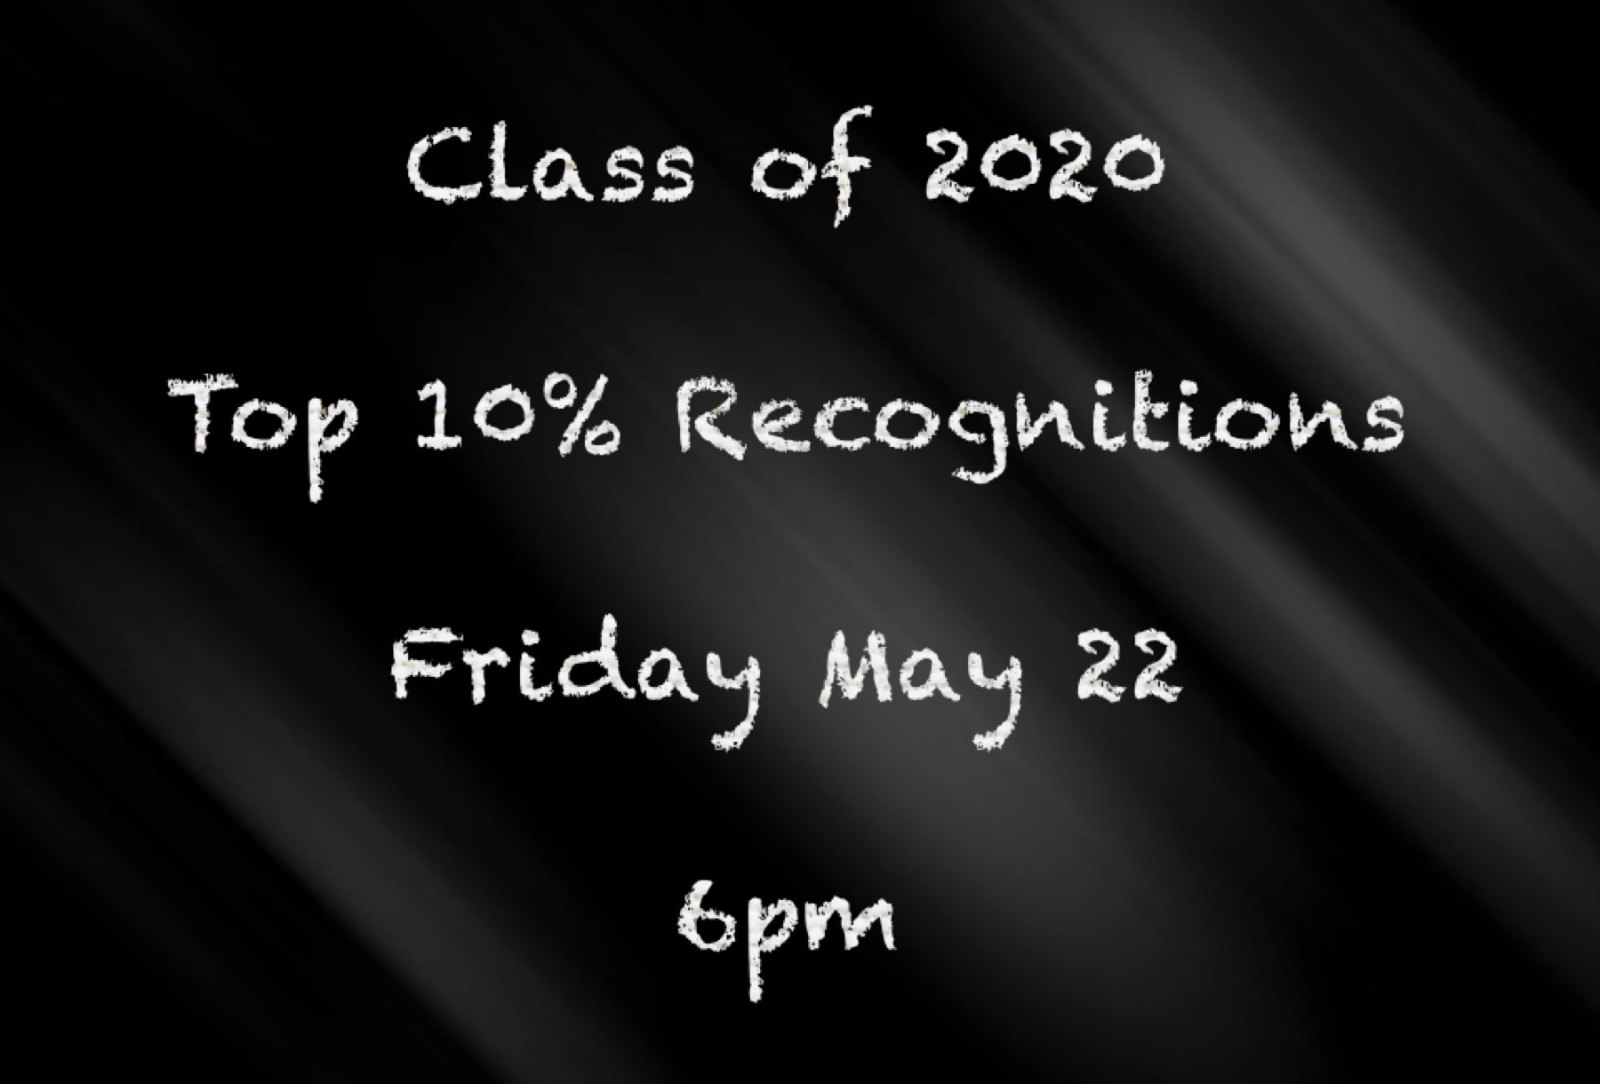 Class of 2020 Top 10% Virtual Recognition's